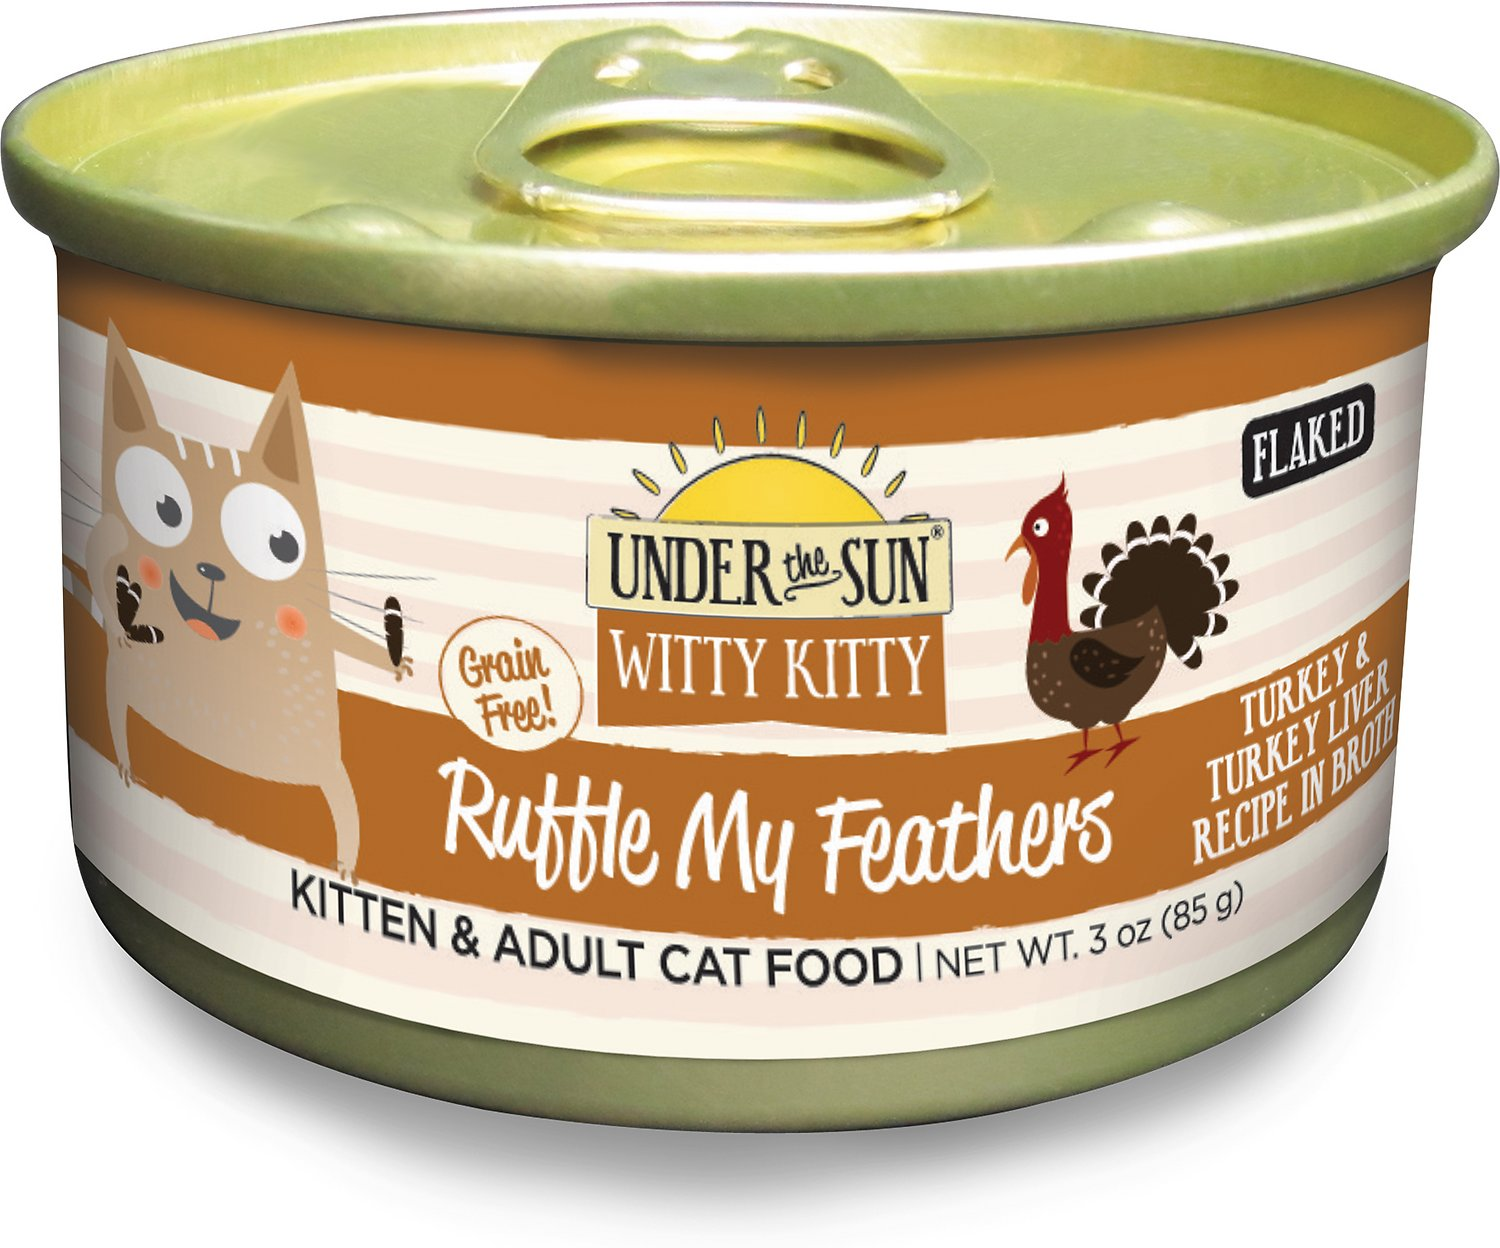 Under the Sun Witty Kitty Grain-Free Ruffle My Feathers Turkey & Turkey Liver Recipe Canned Cat Food, 3-oz